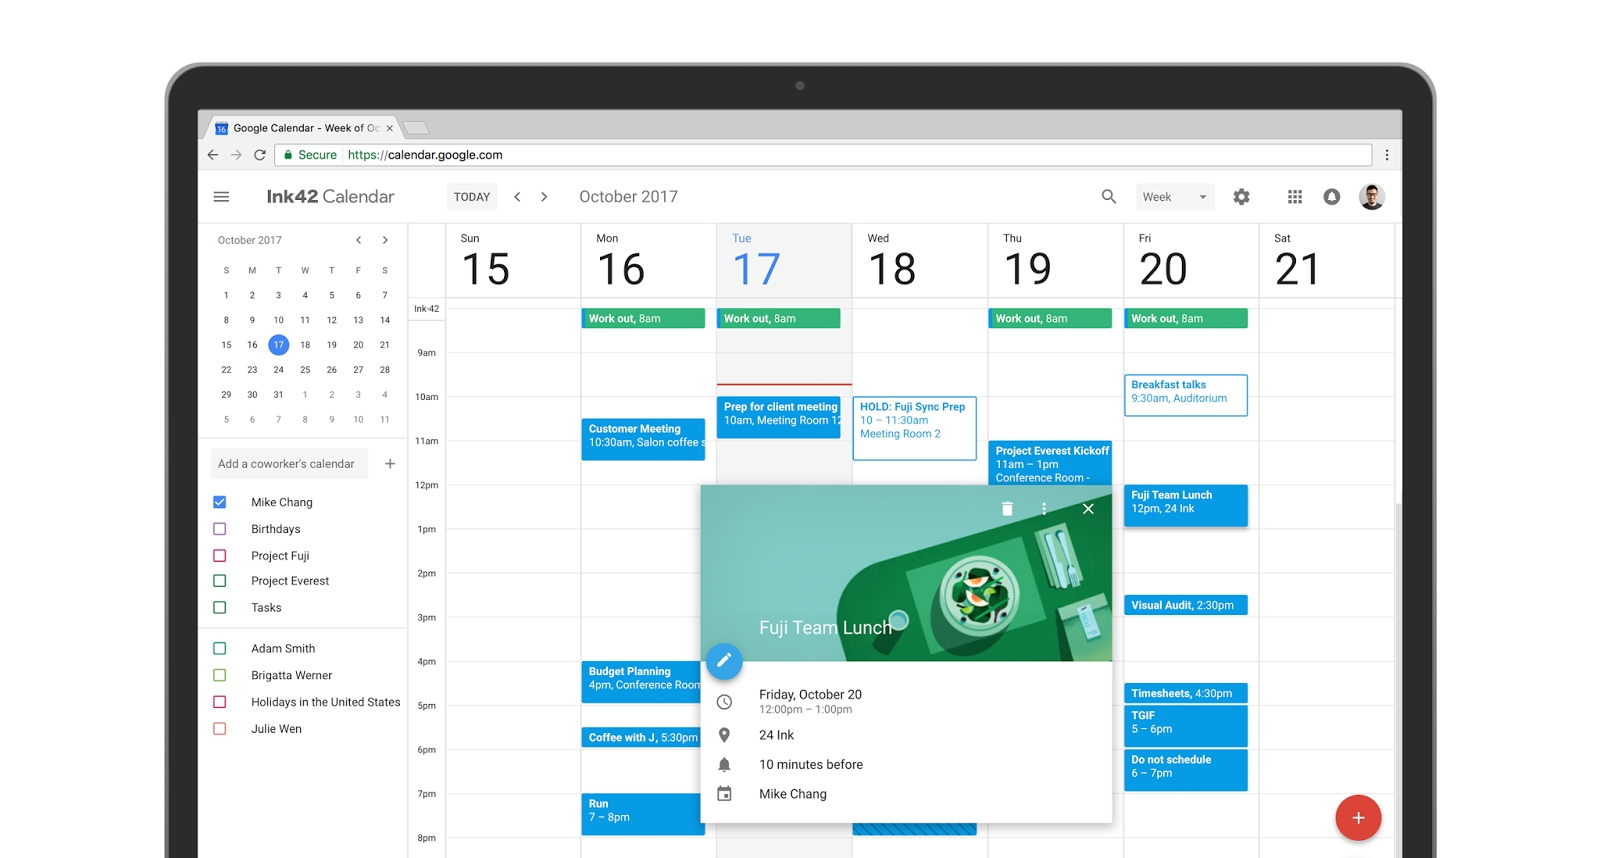 G Suite Updates Blog: Time For A Refresh: Meet The New